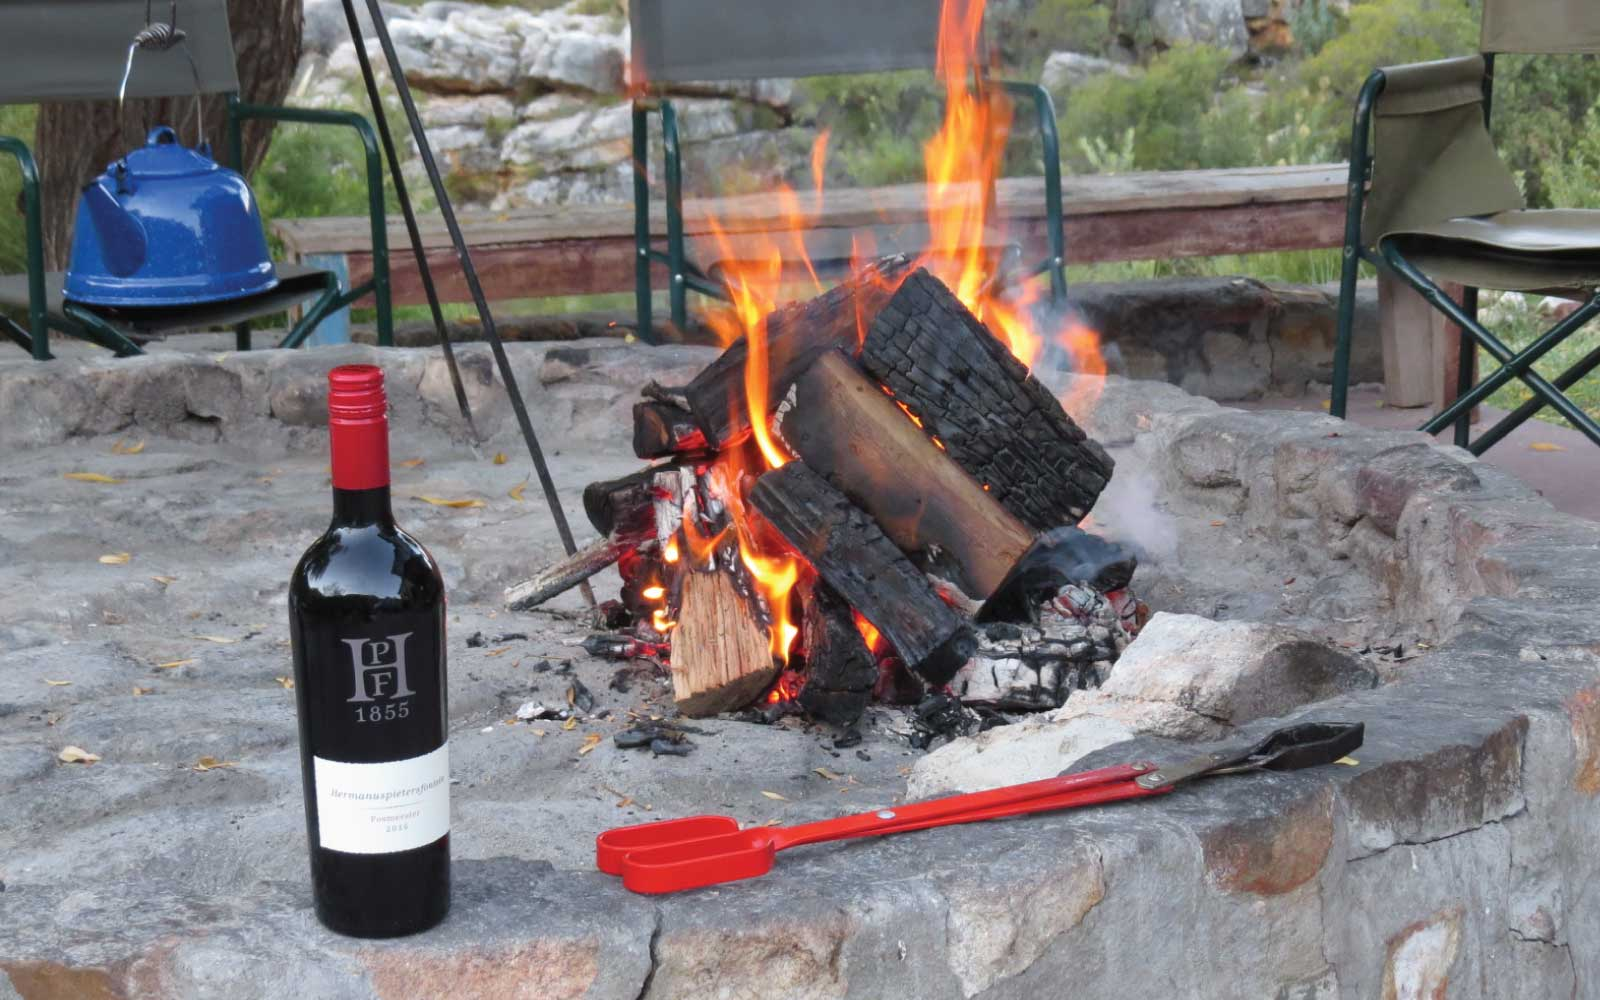 Fire pit and good wine